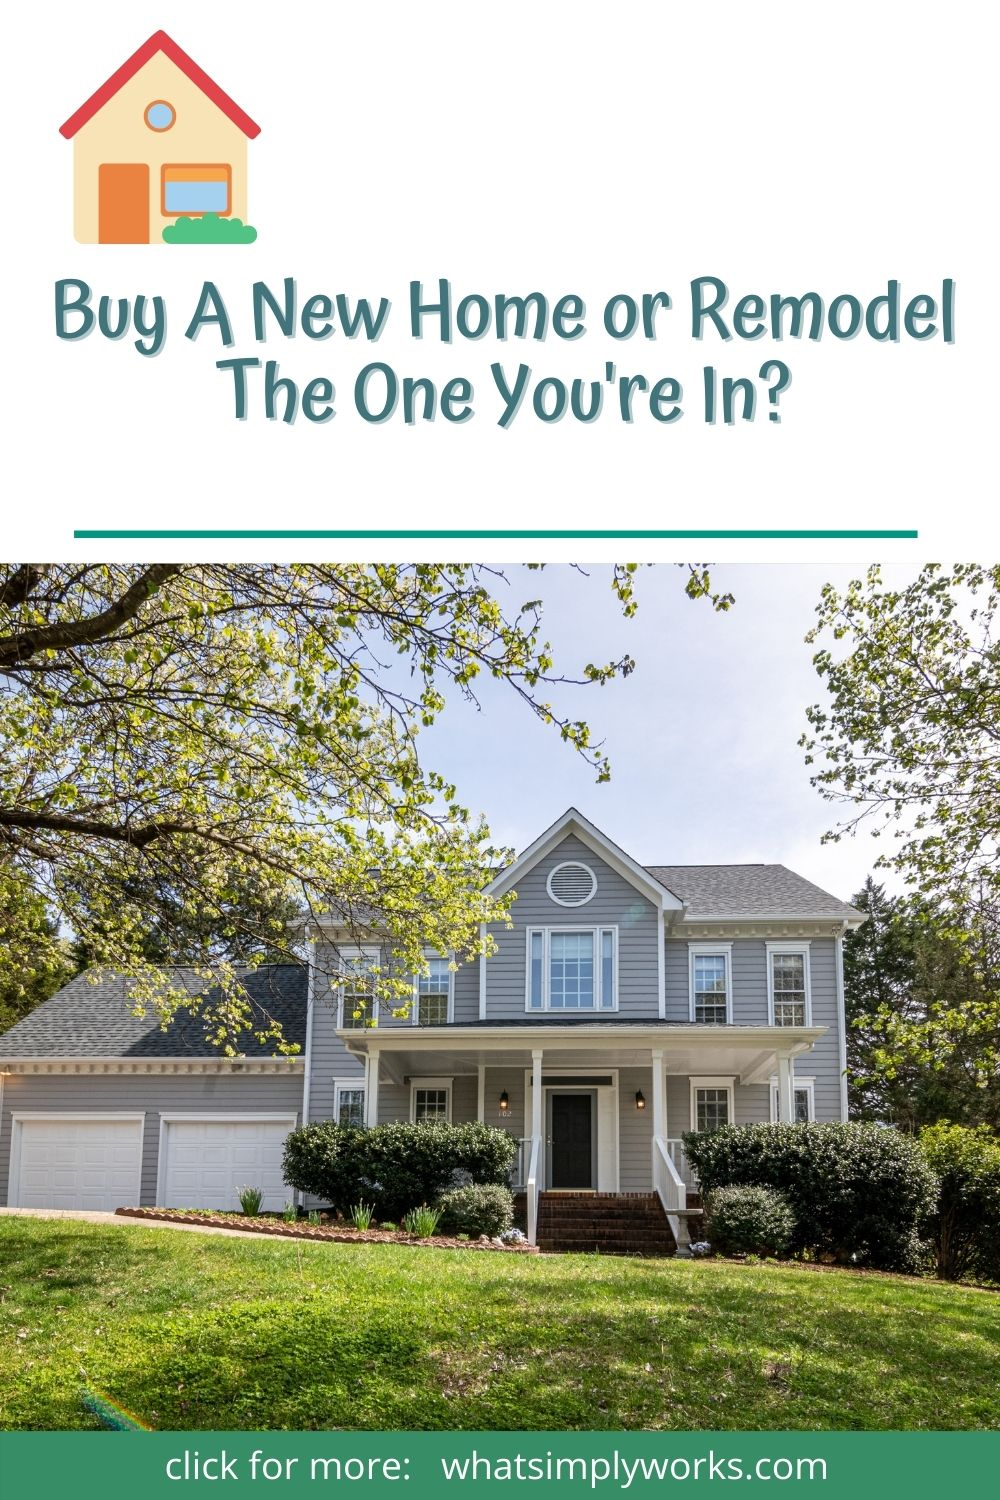 house, Should You Buy A New Home or Remodel The One You're In